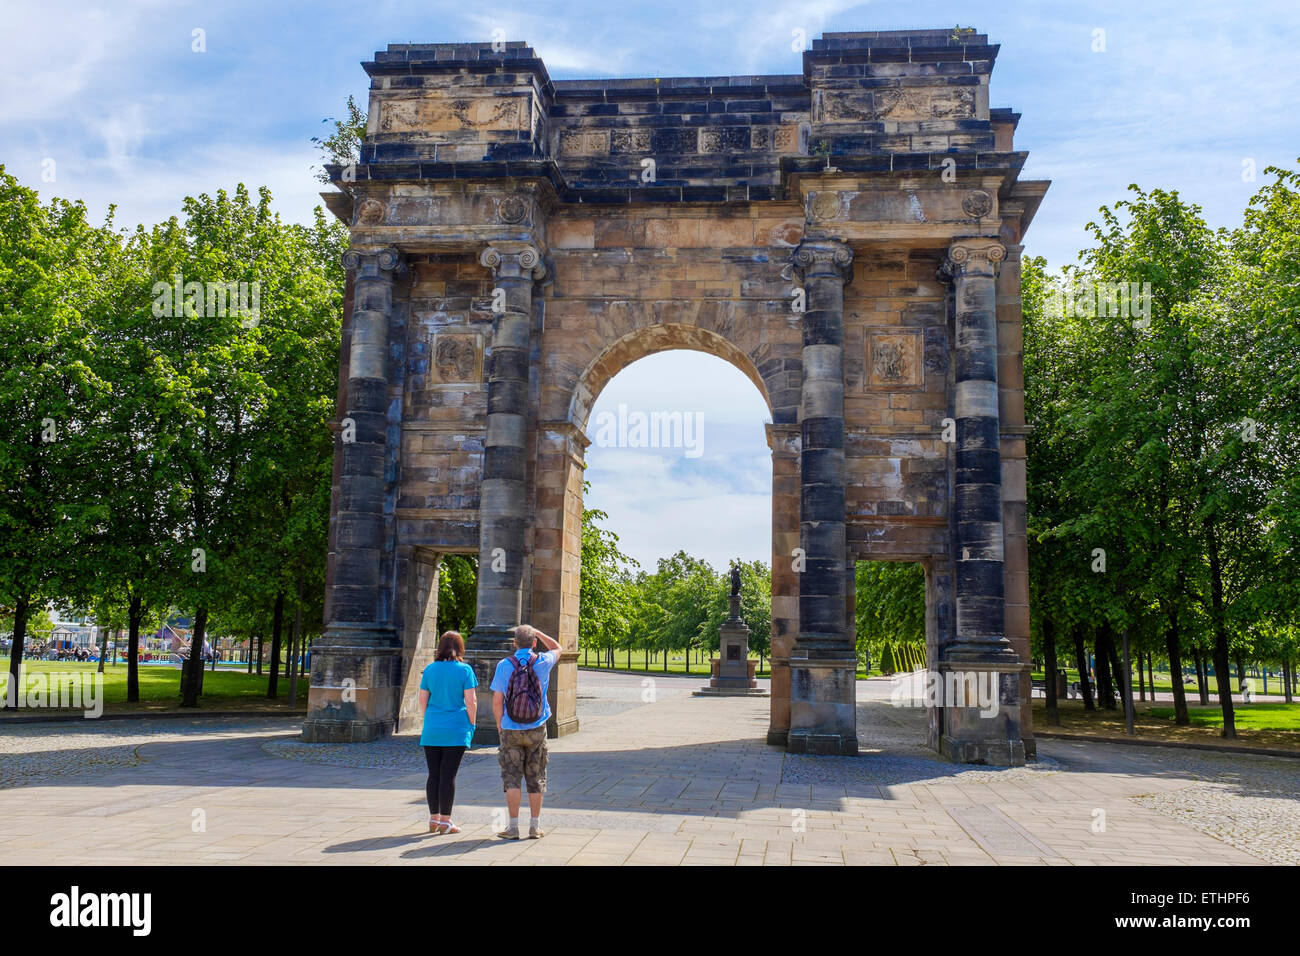 McLennan Arch designed by Robert Adam in 18th century, originally part of a mansion house, rebuilt on Glasgow Green - Stock Image